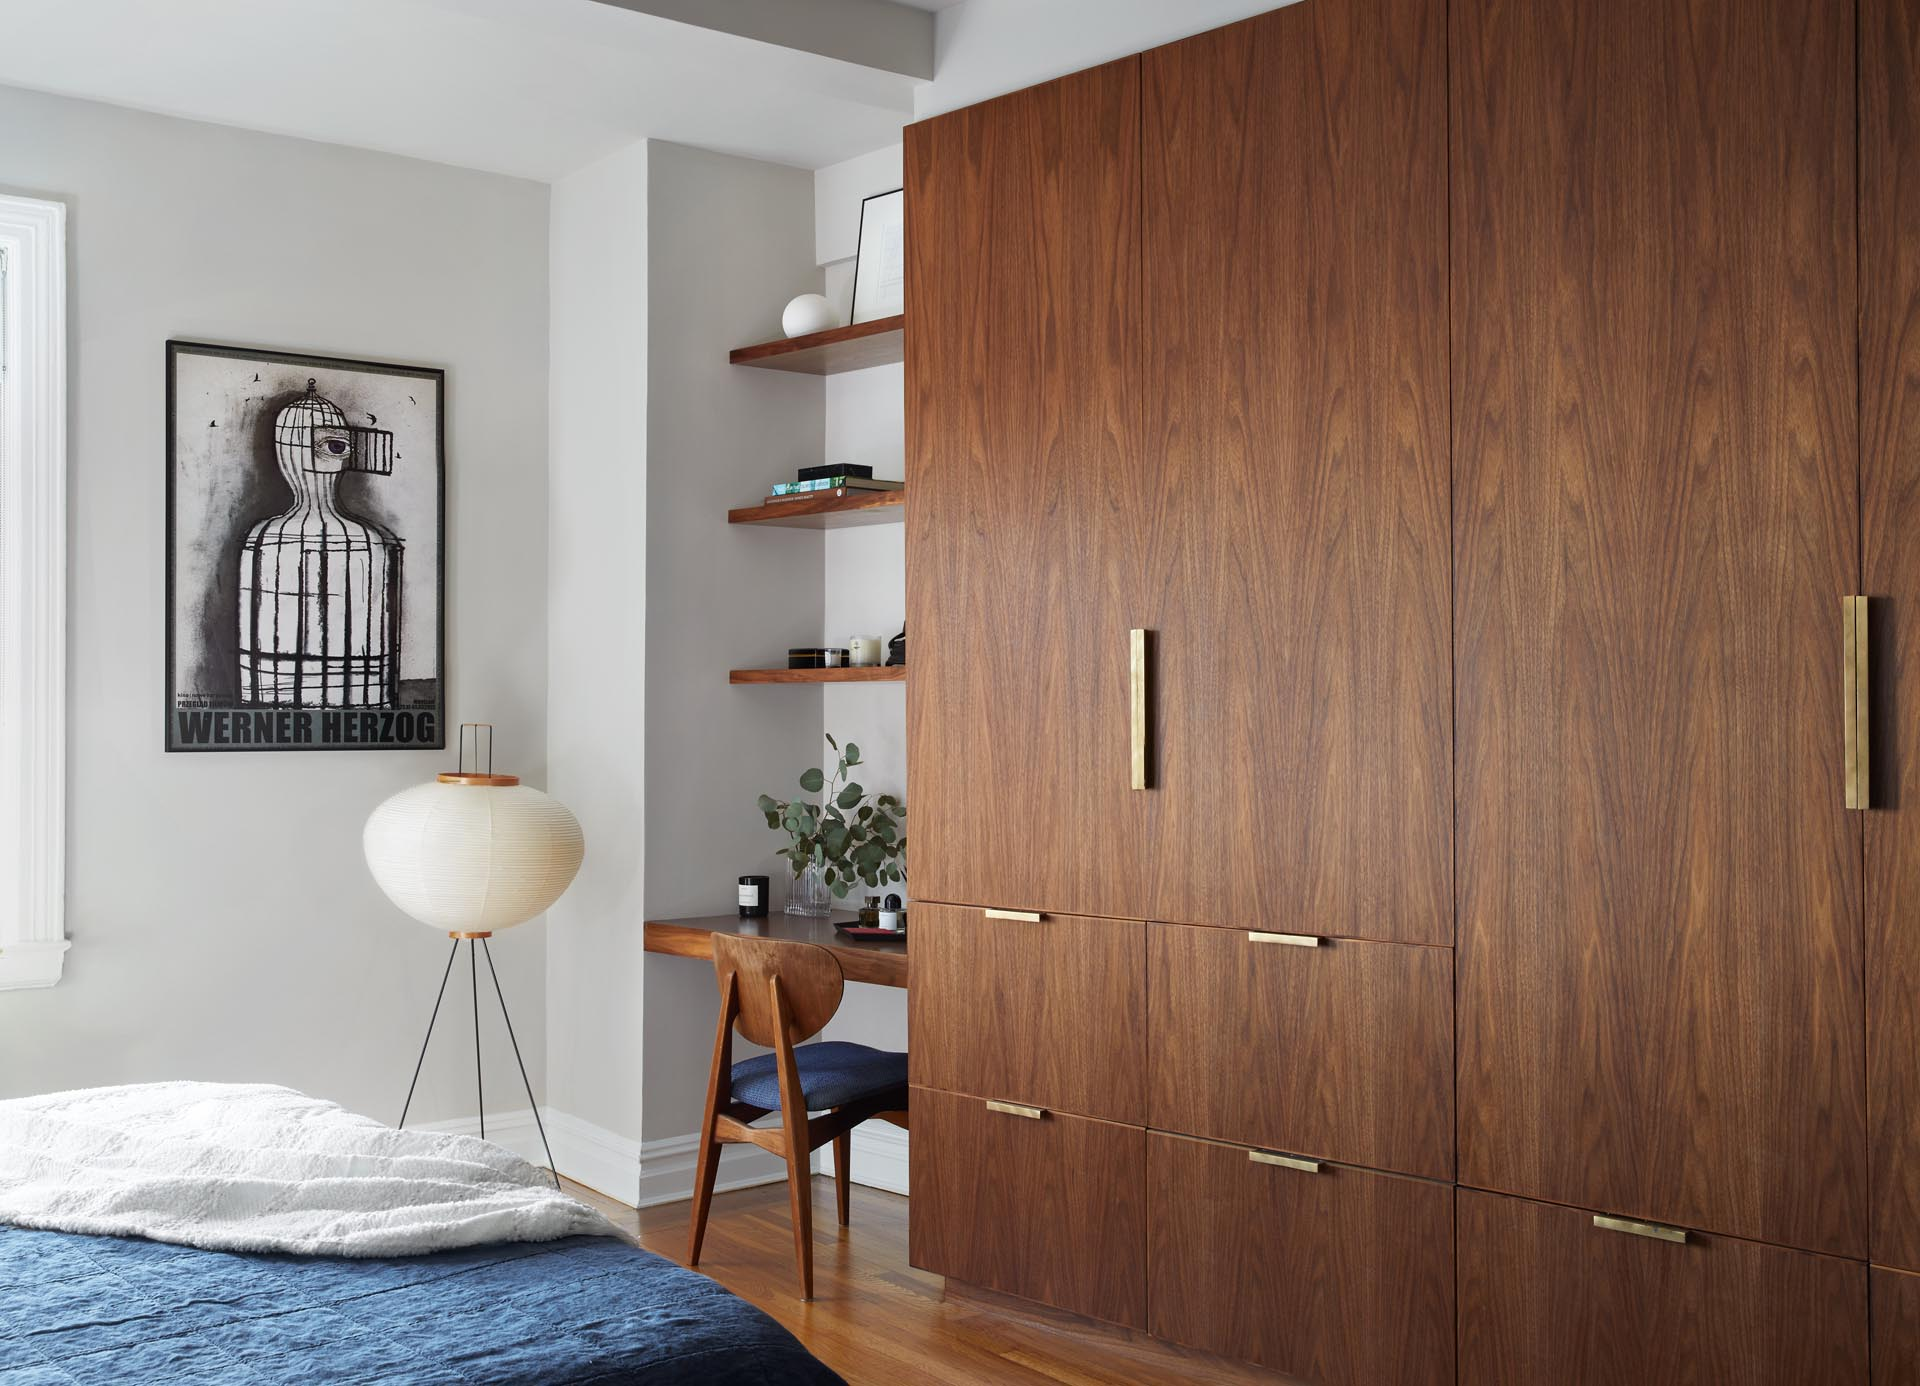 A bedroom with custom walnut wardrobe, storage,and vanity nook (desk), that accented by brass hardware.